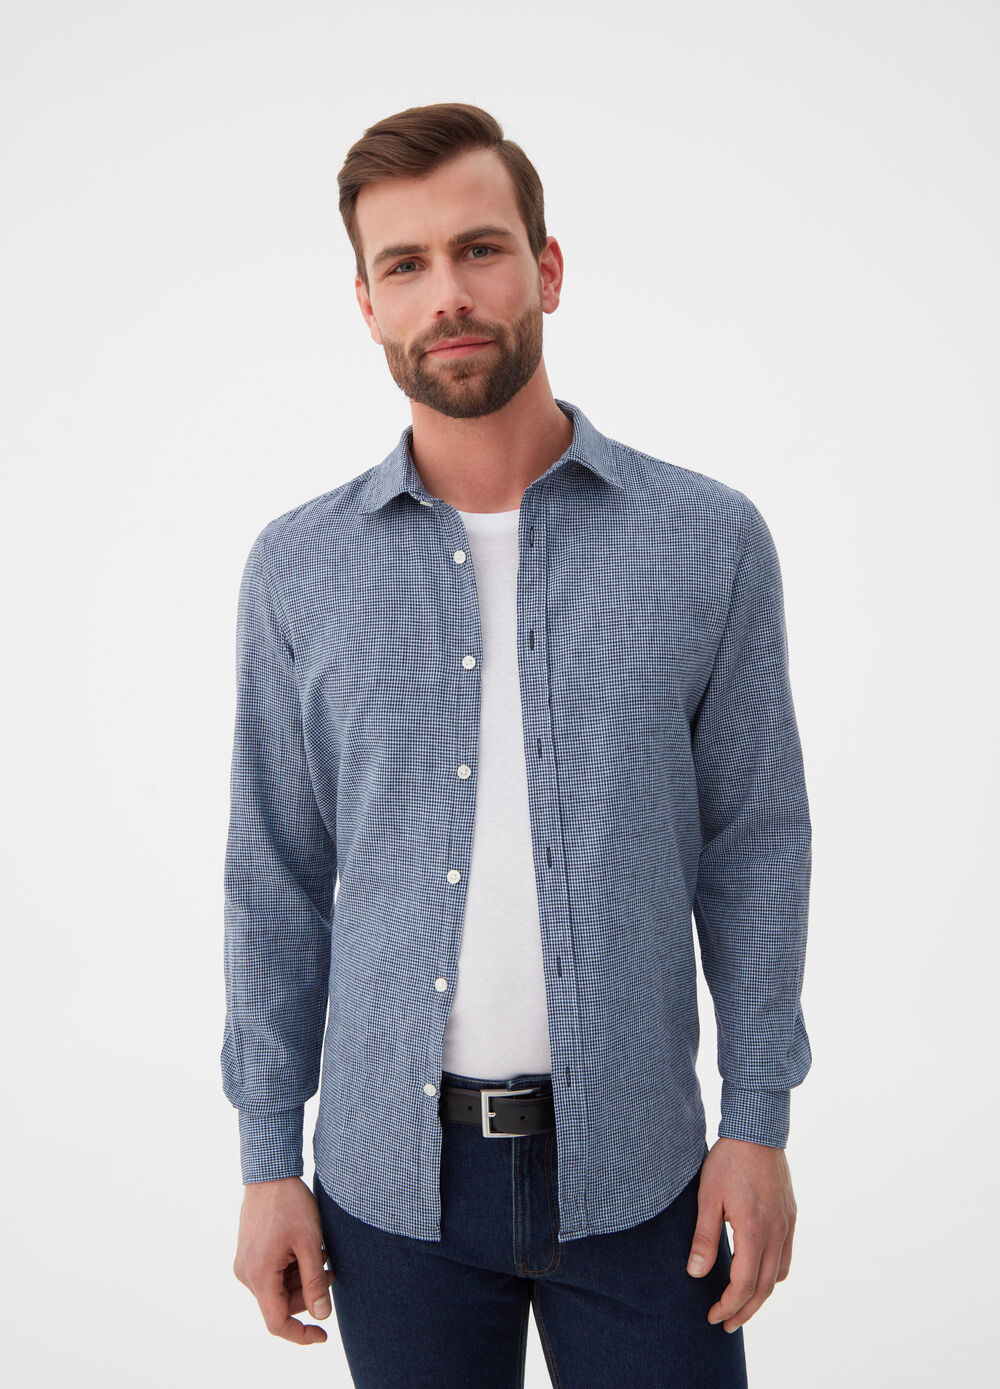 Regular-fit shirt with micro checks.